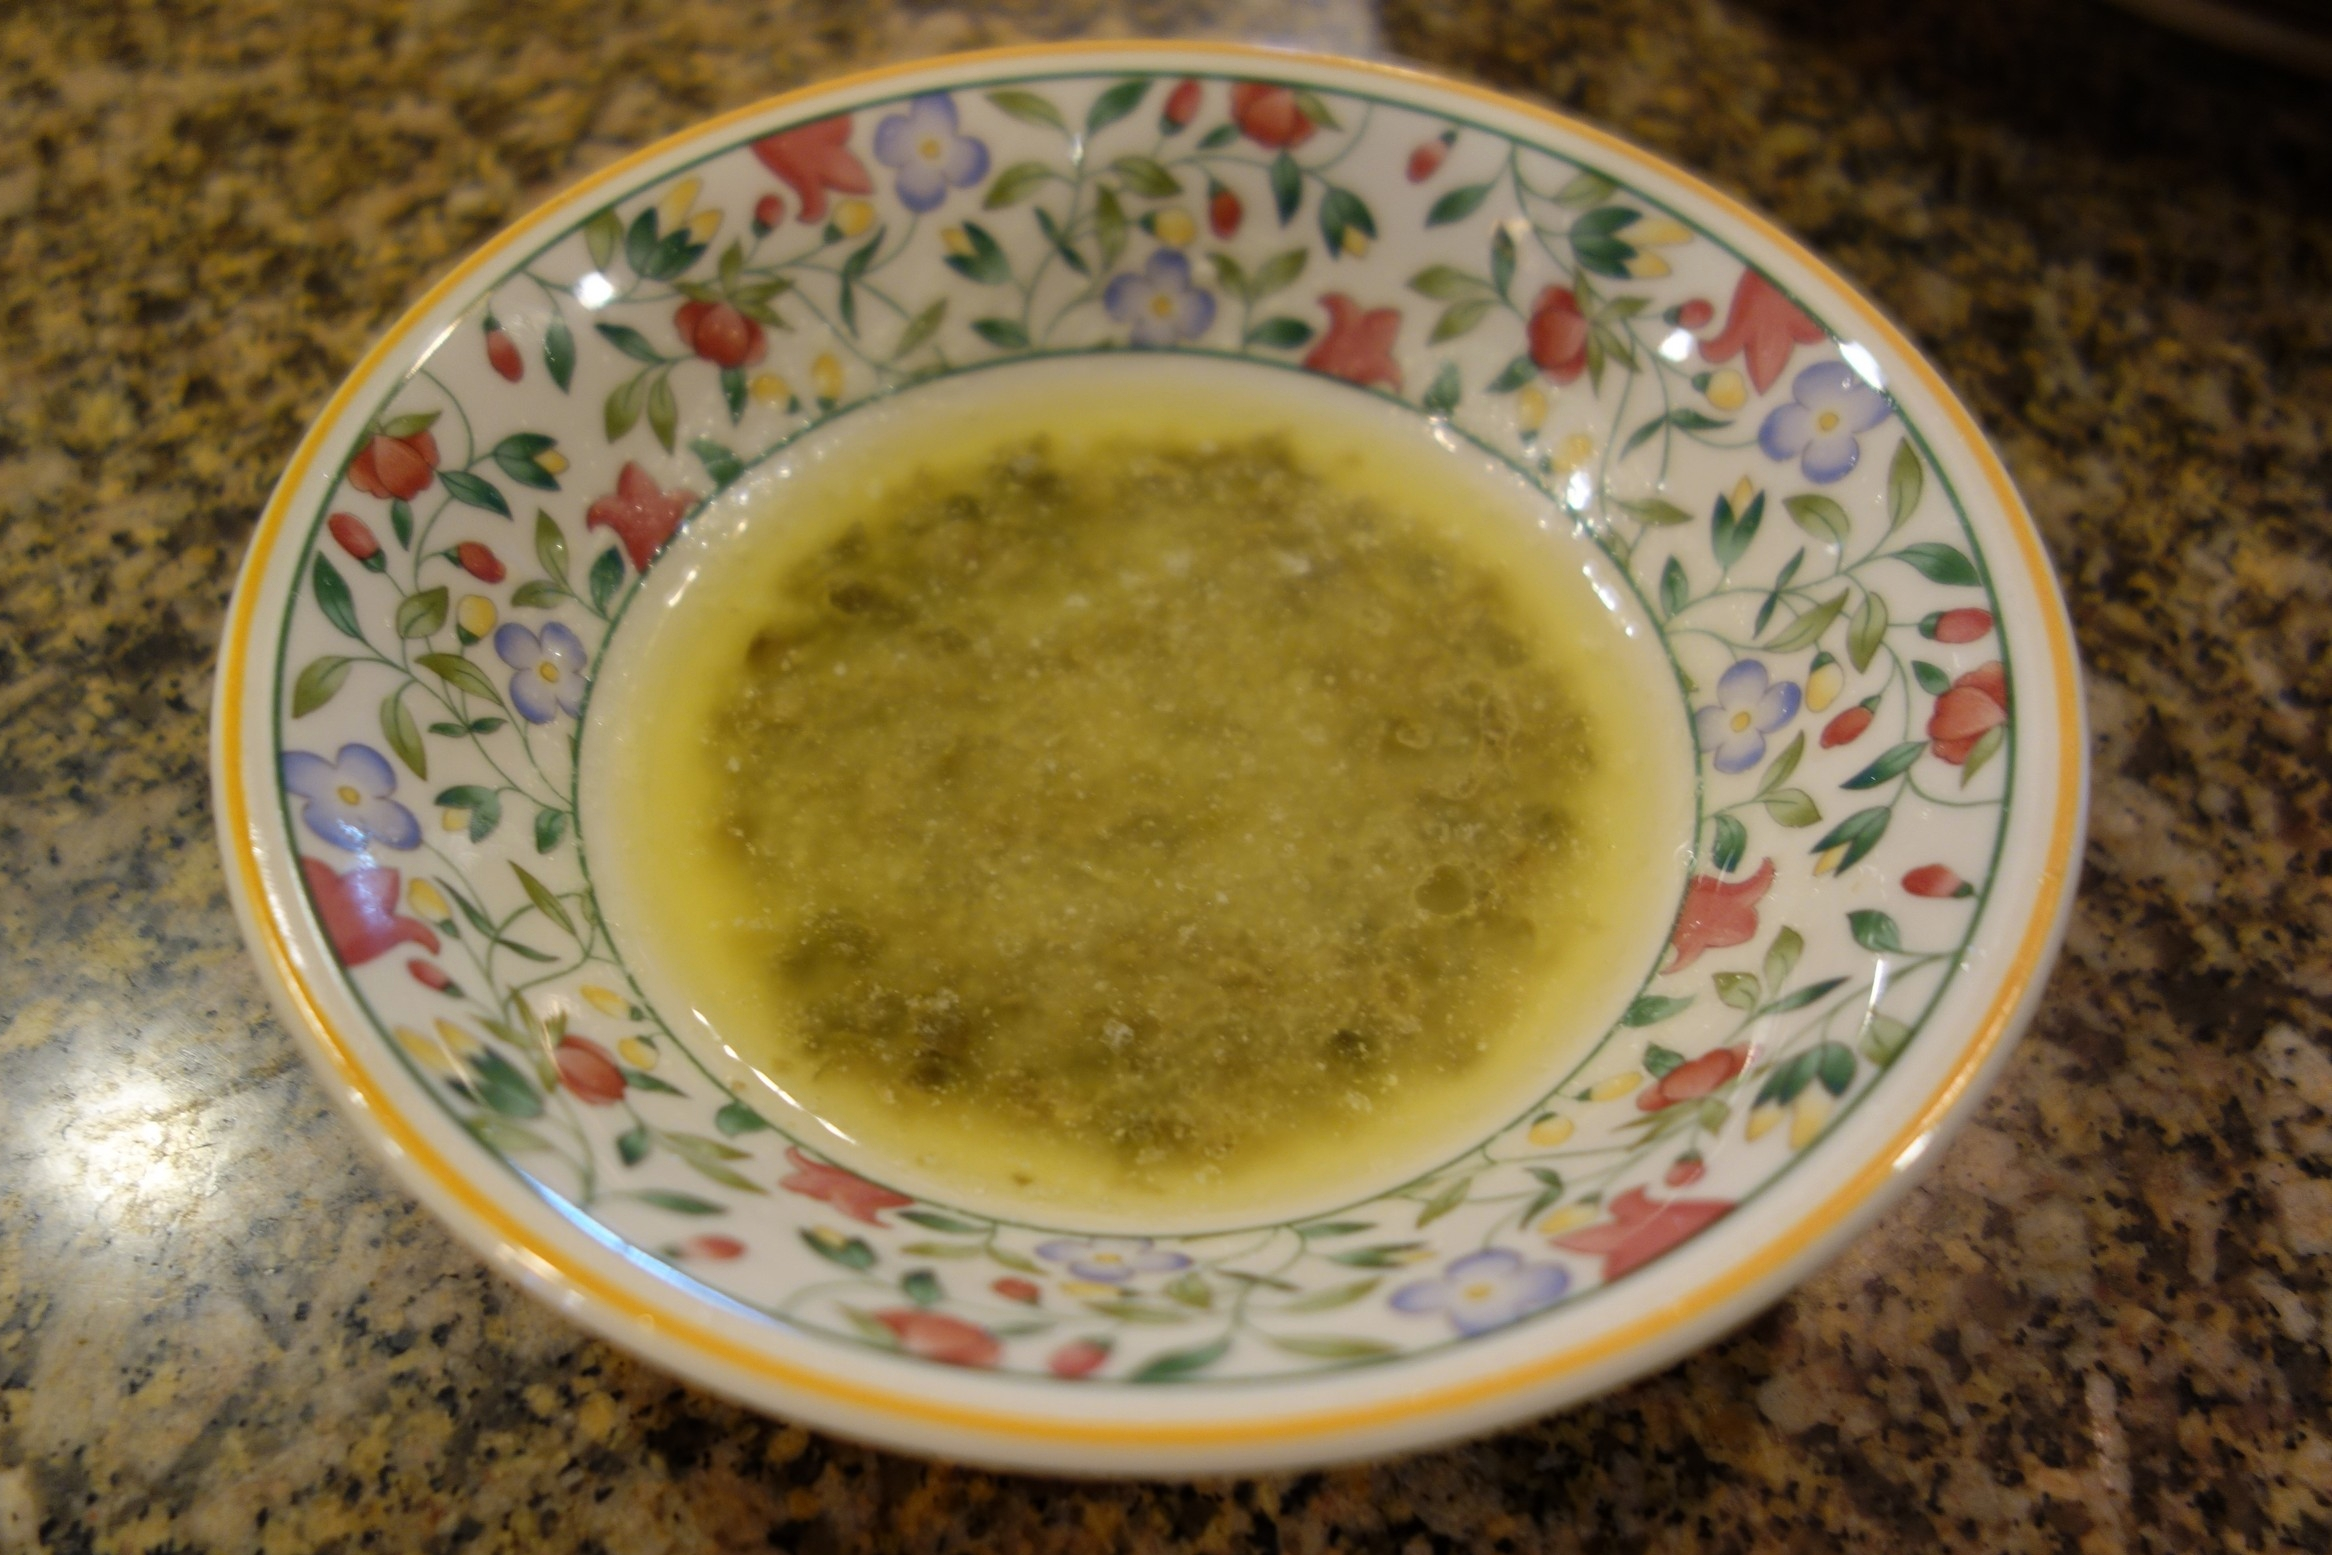 Get the sauce ready.  Melt 2 tbsp of real butter by microwaving it in a bowl, then add the minced capers and lemon juice.